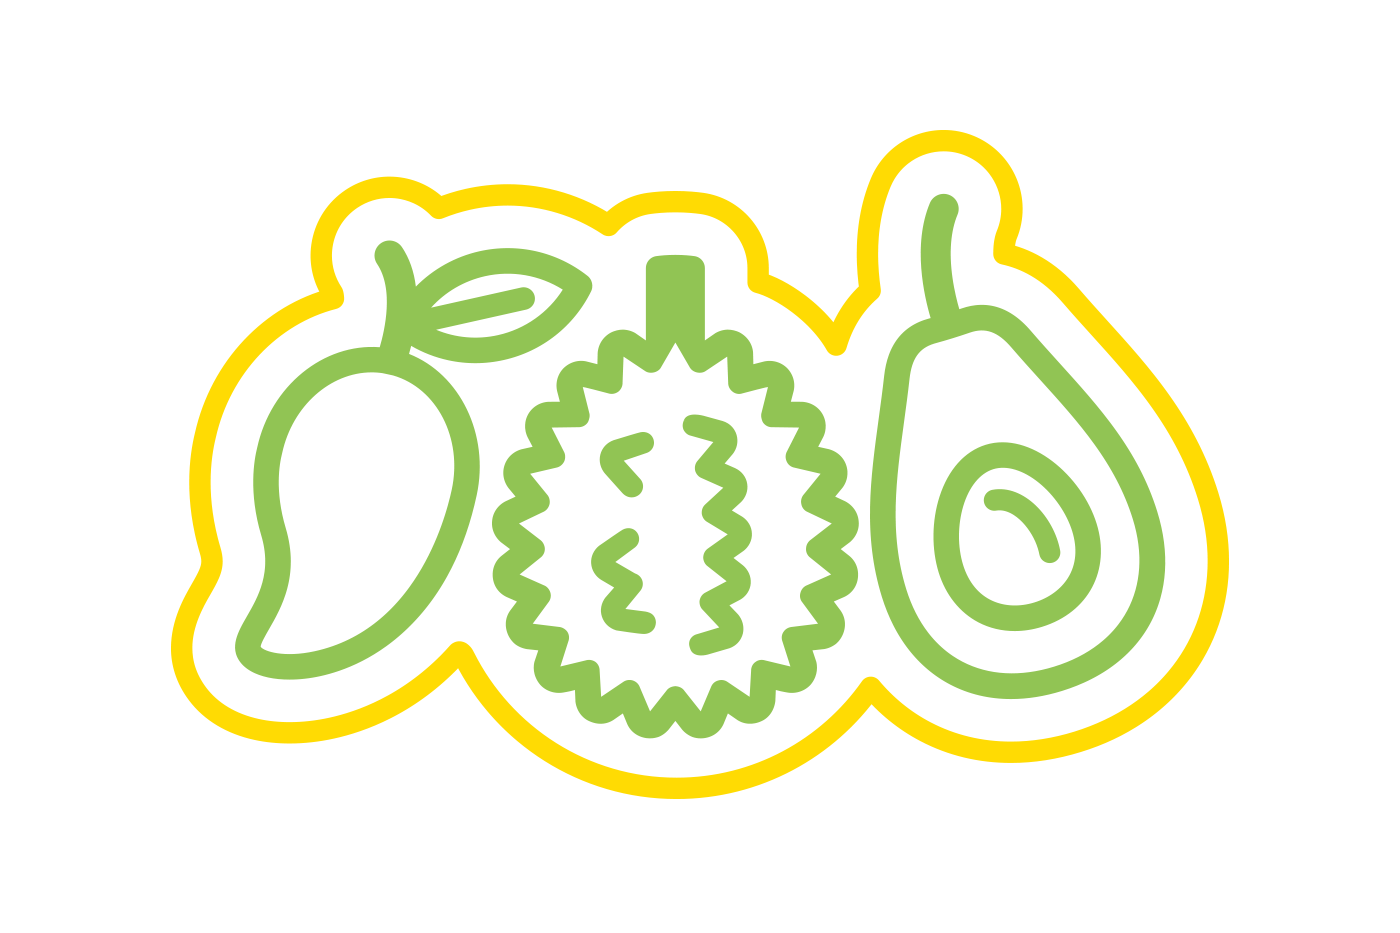 specialist produce expert icon